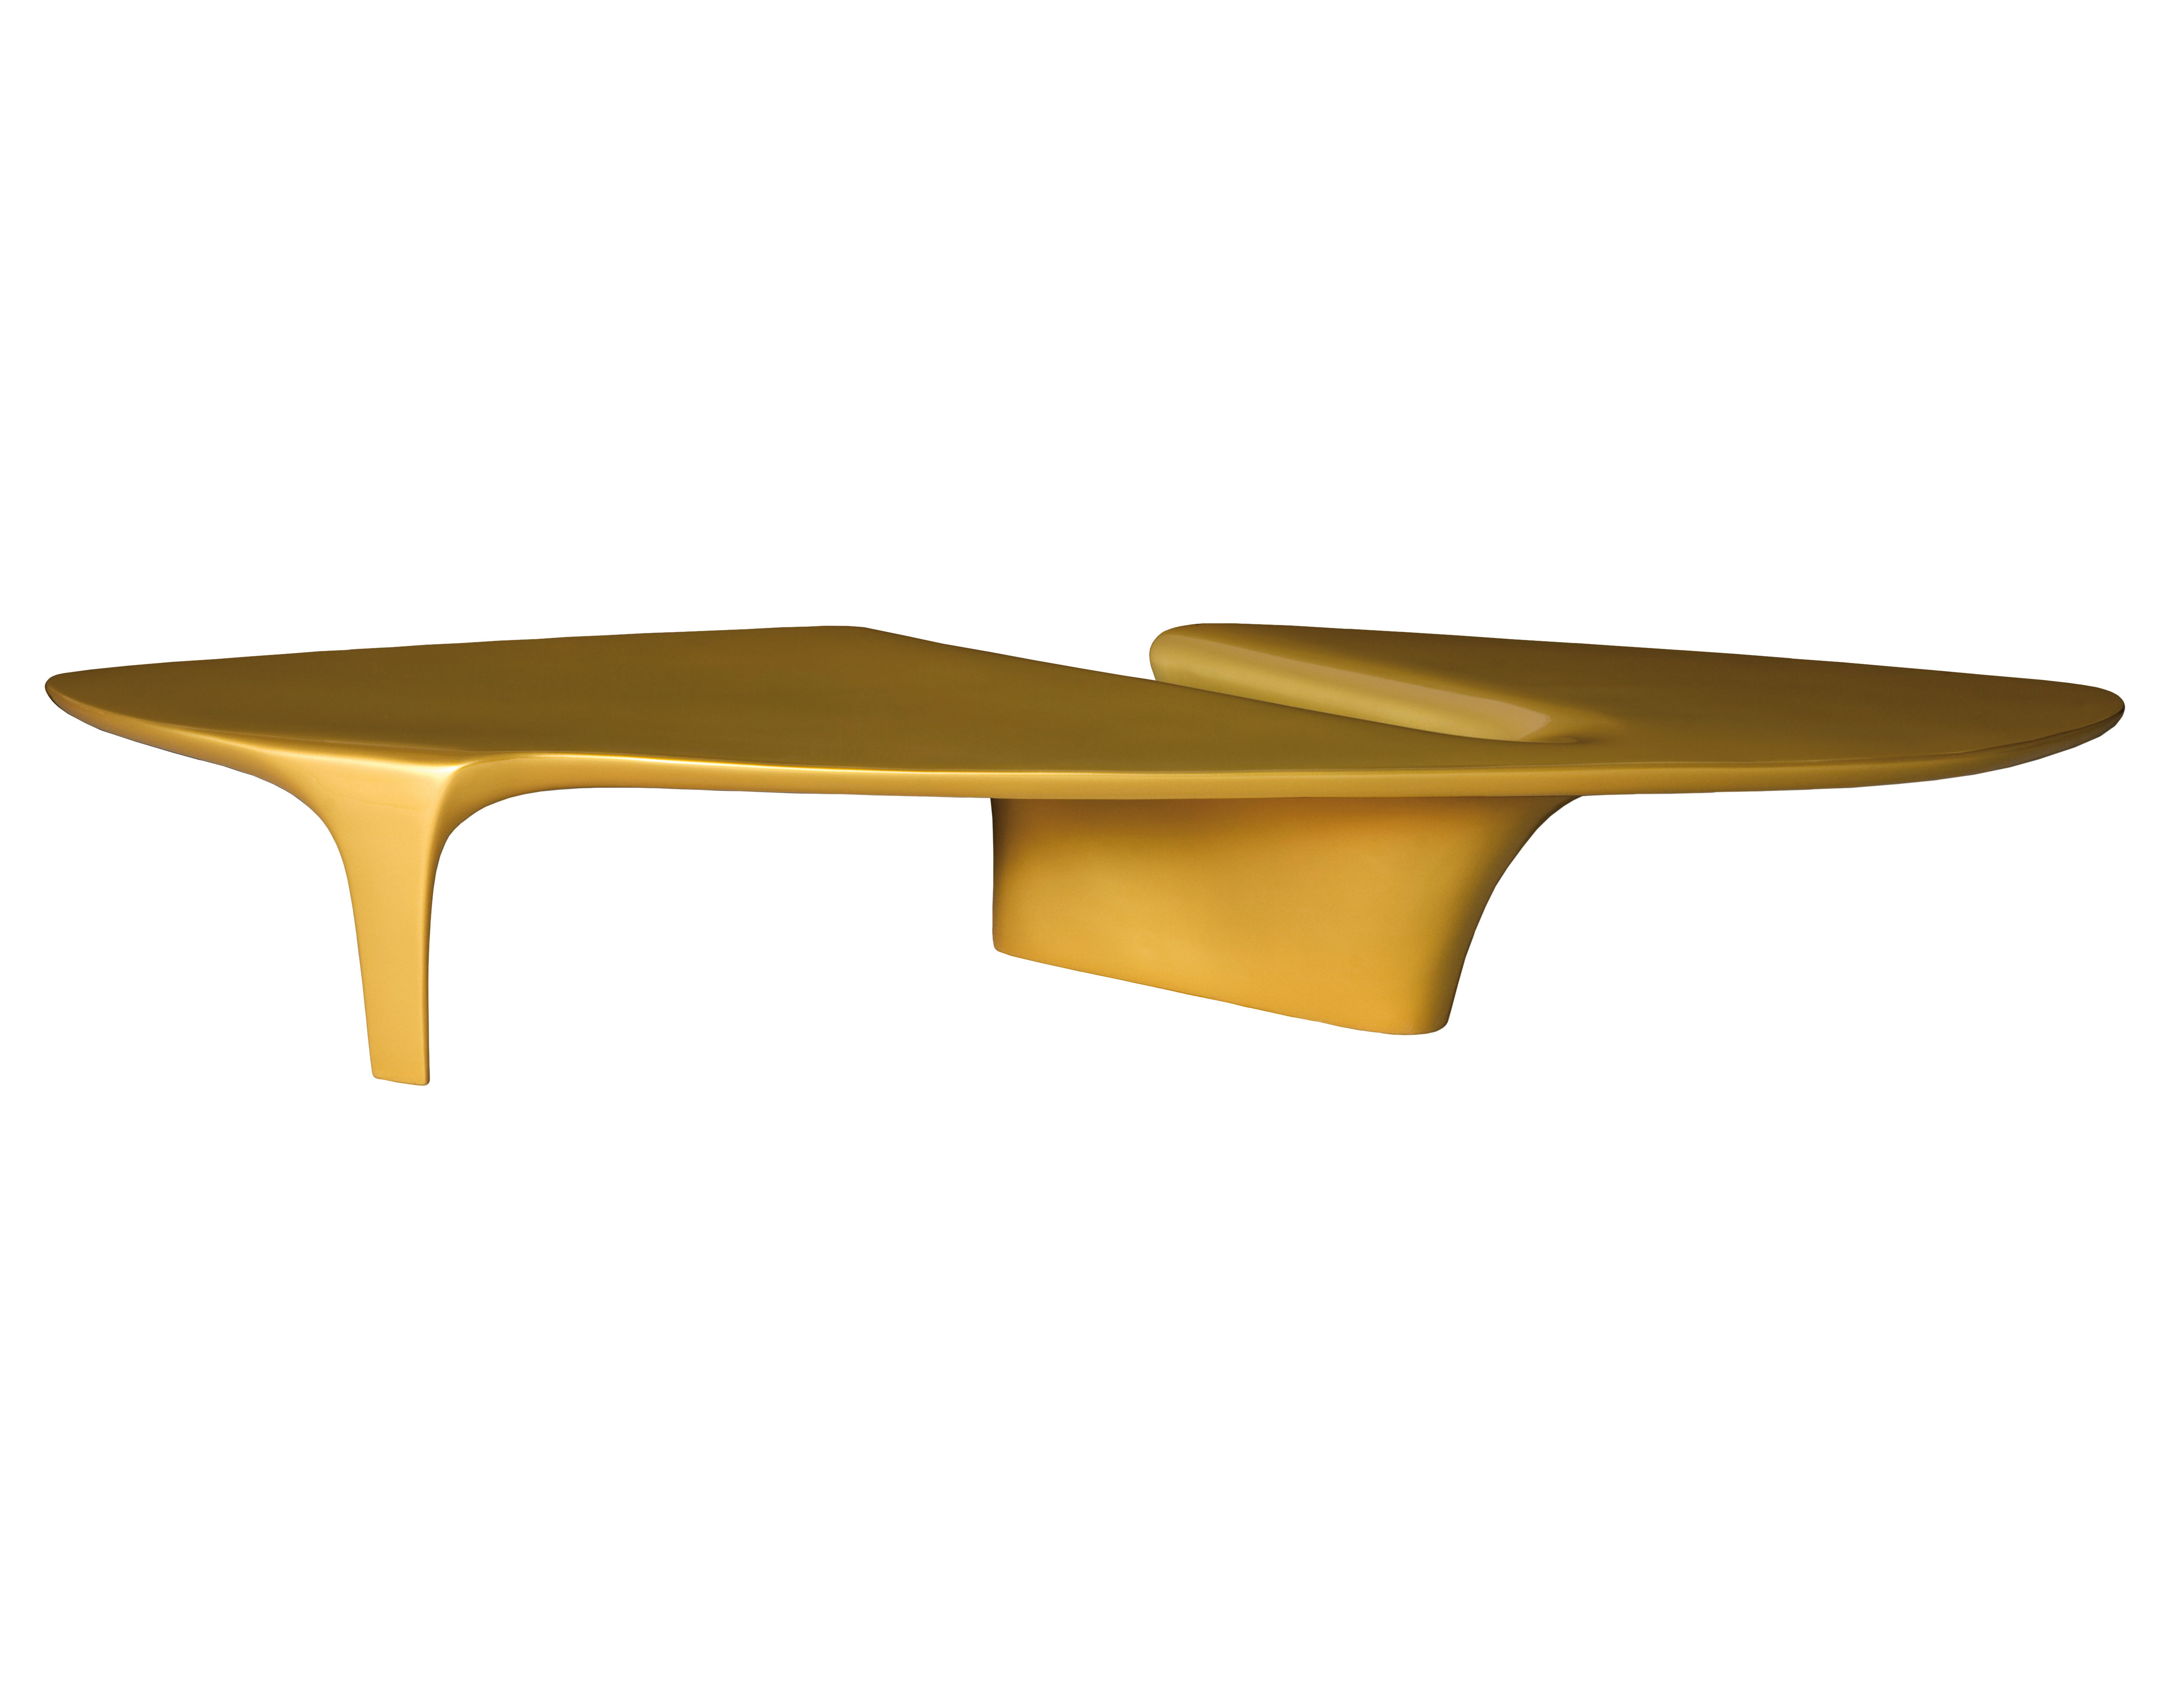 Waterfall coffee table 216 x 60 cm gold by driade for Coffee table 60cm x 60cm